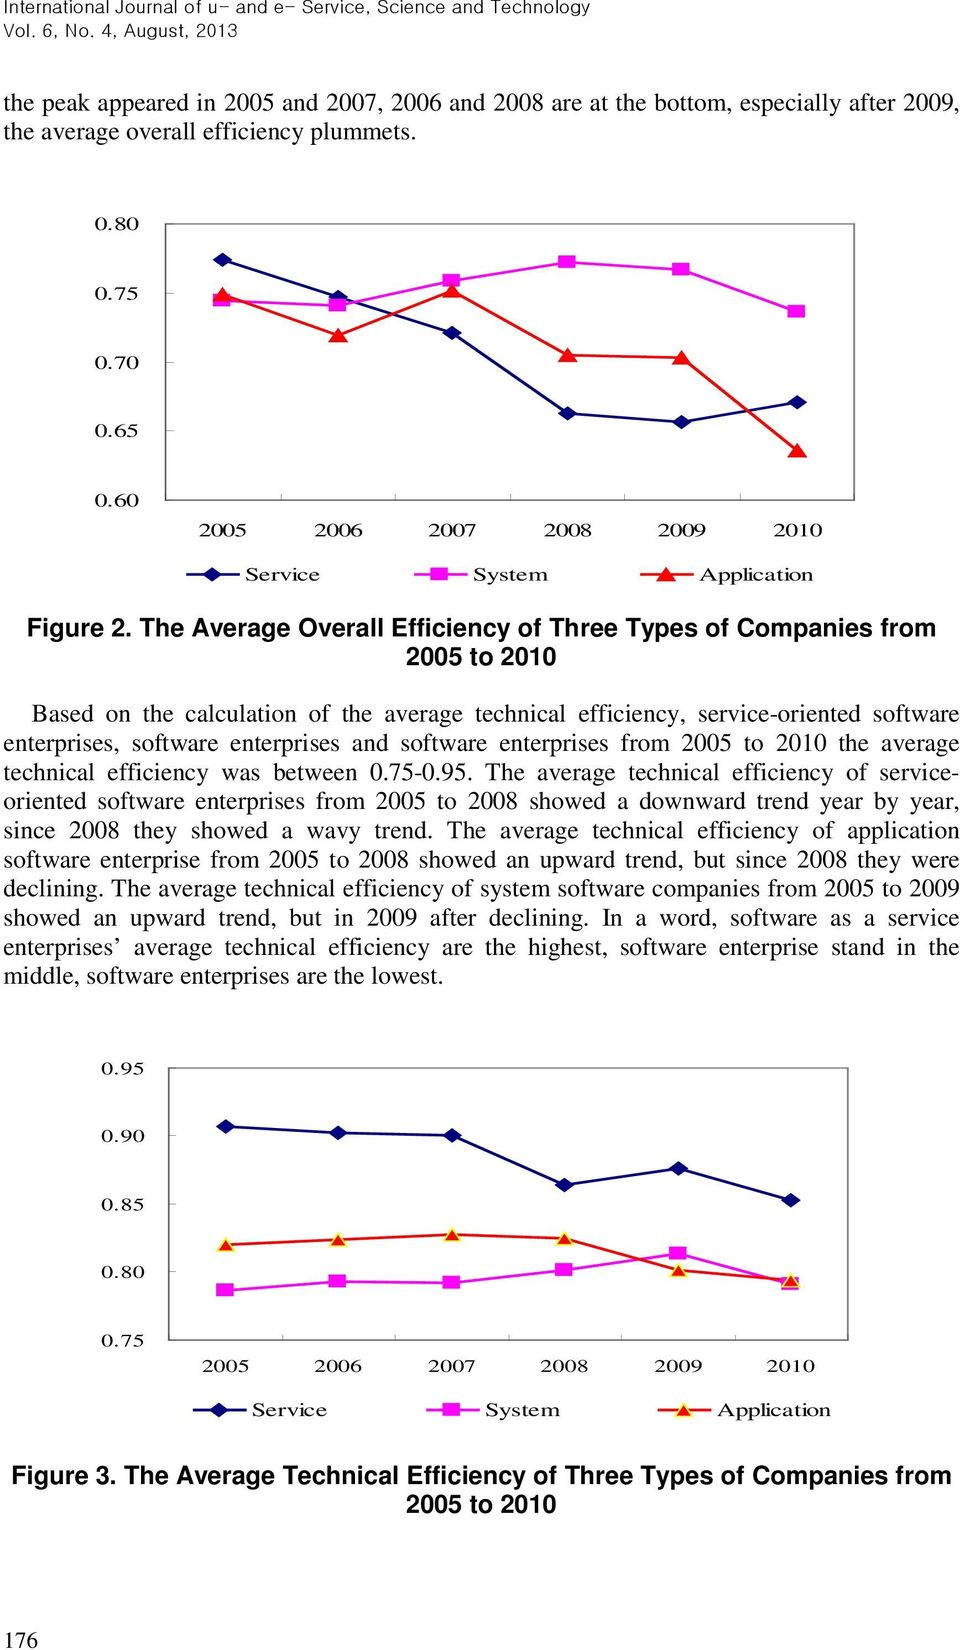 The Average Overall Efficiency of Three Types of Companies from 2005 to 2010 Based on the calculation of the average technical efficiency, service-oriented software enterprises, software enterprises